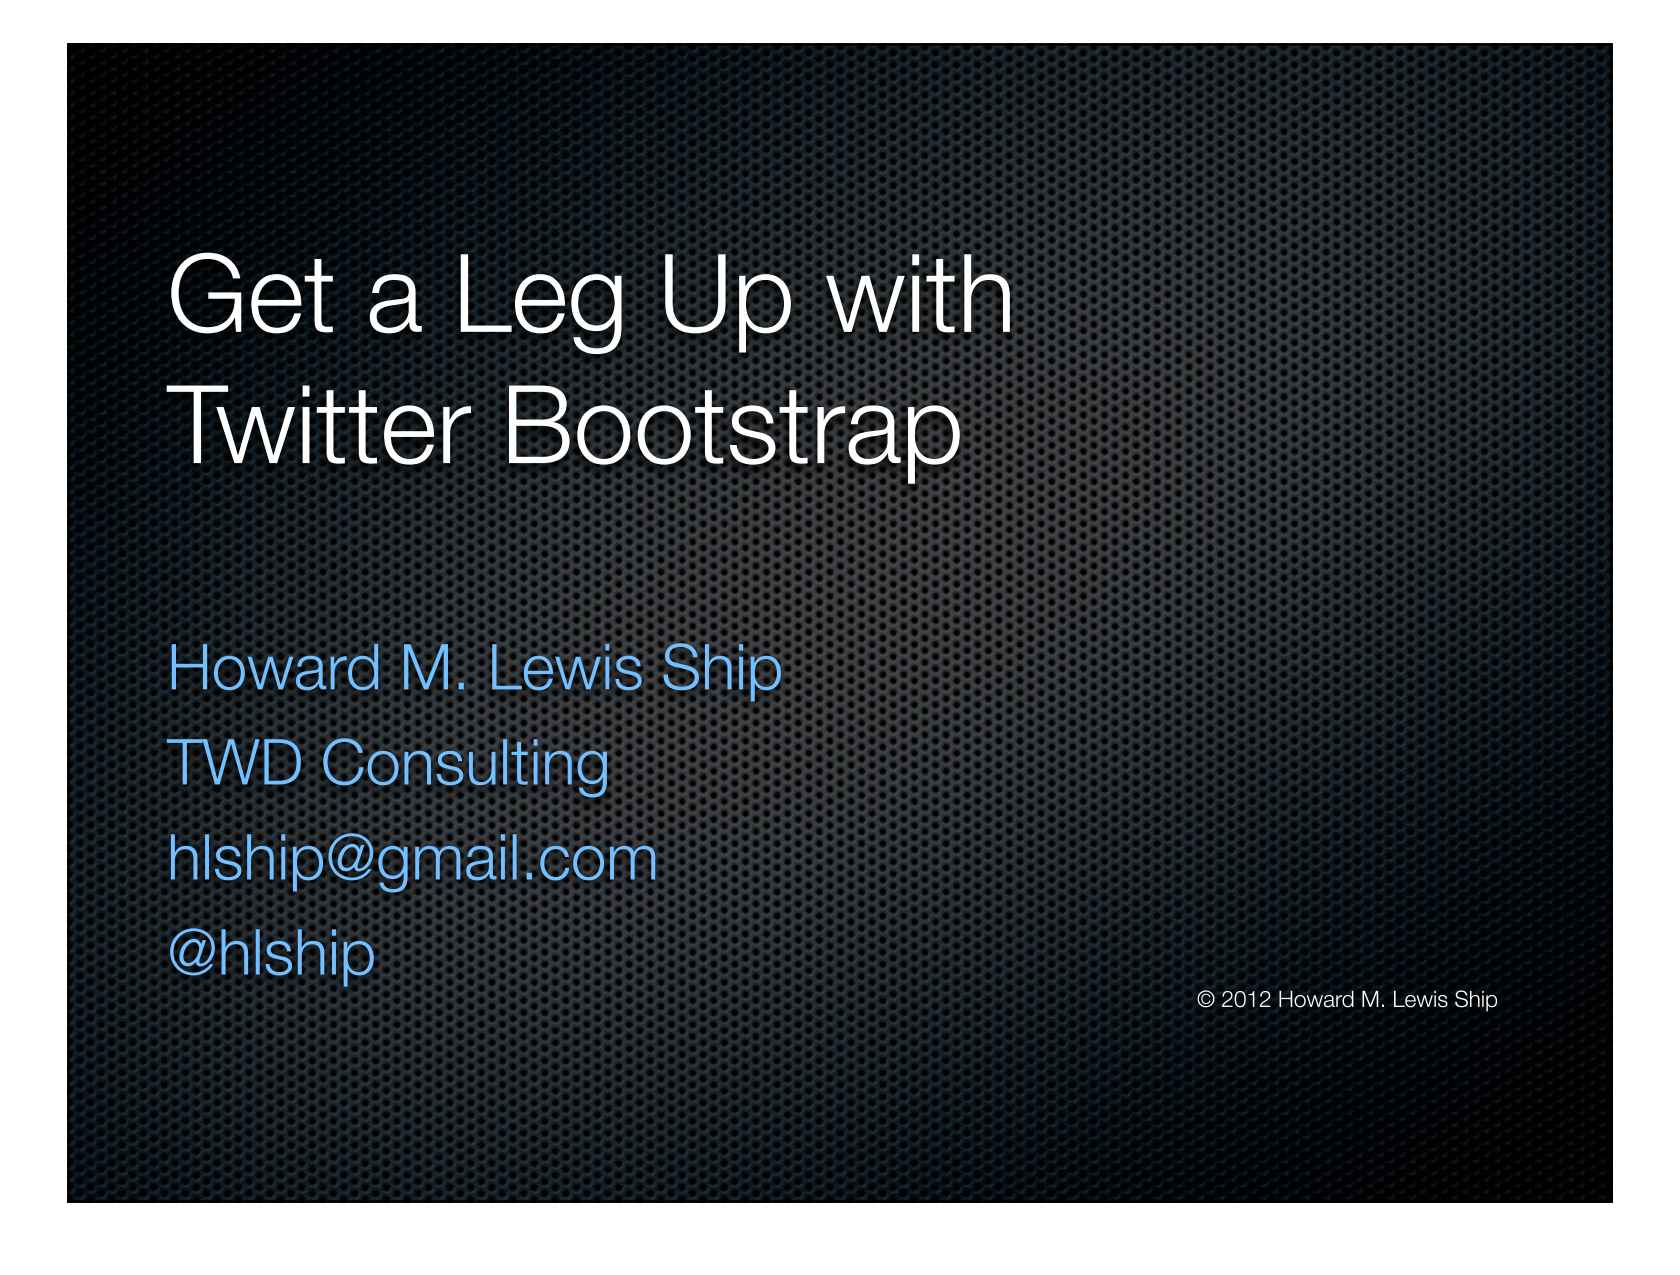 Get A Leg Up With Twitter Bootstrap